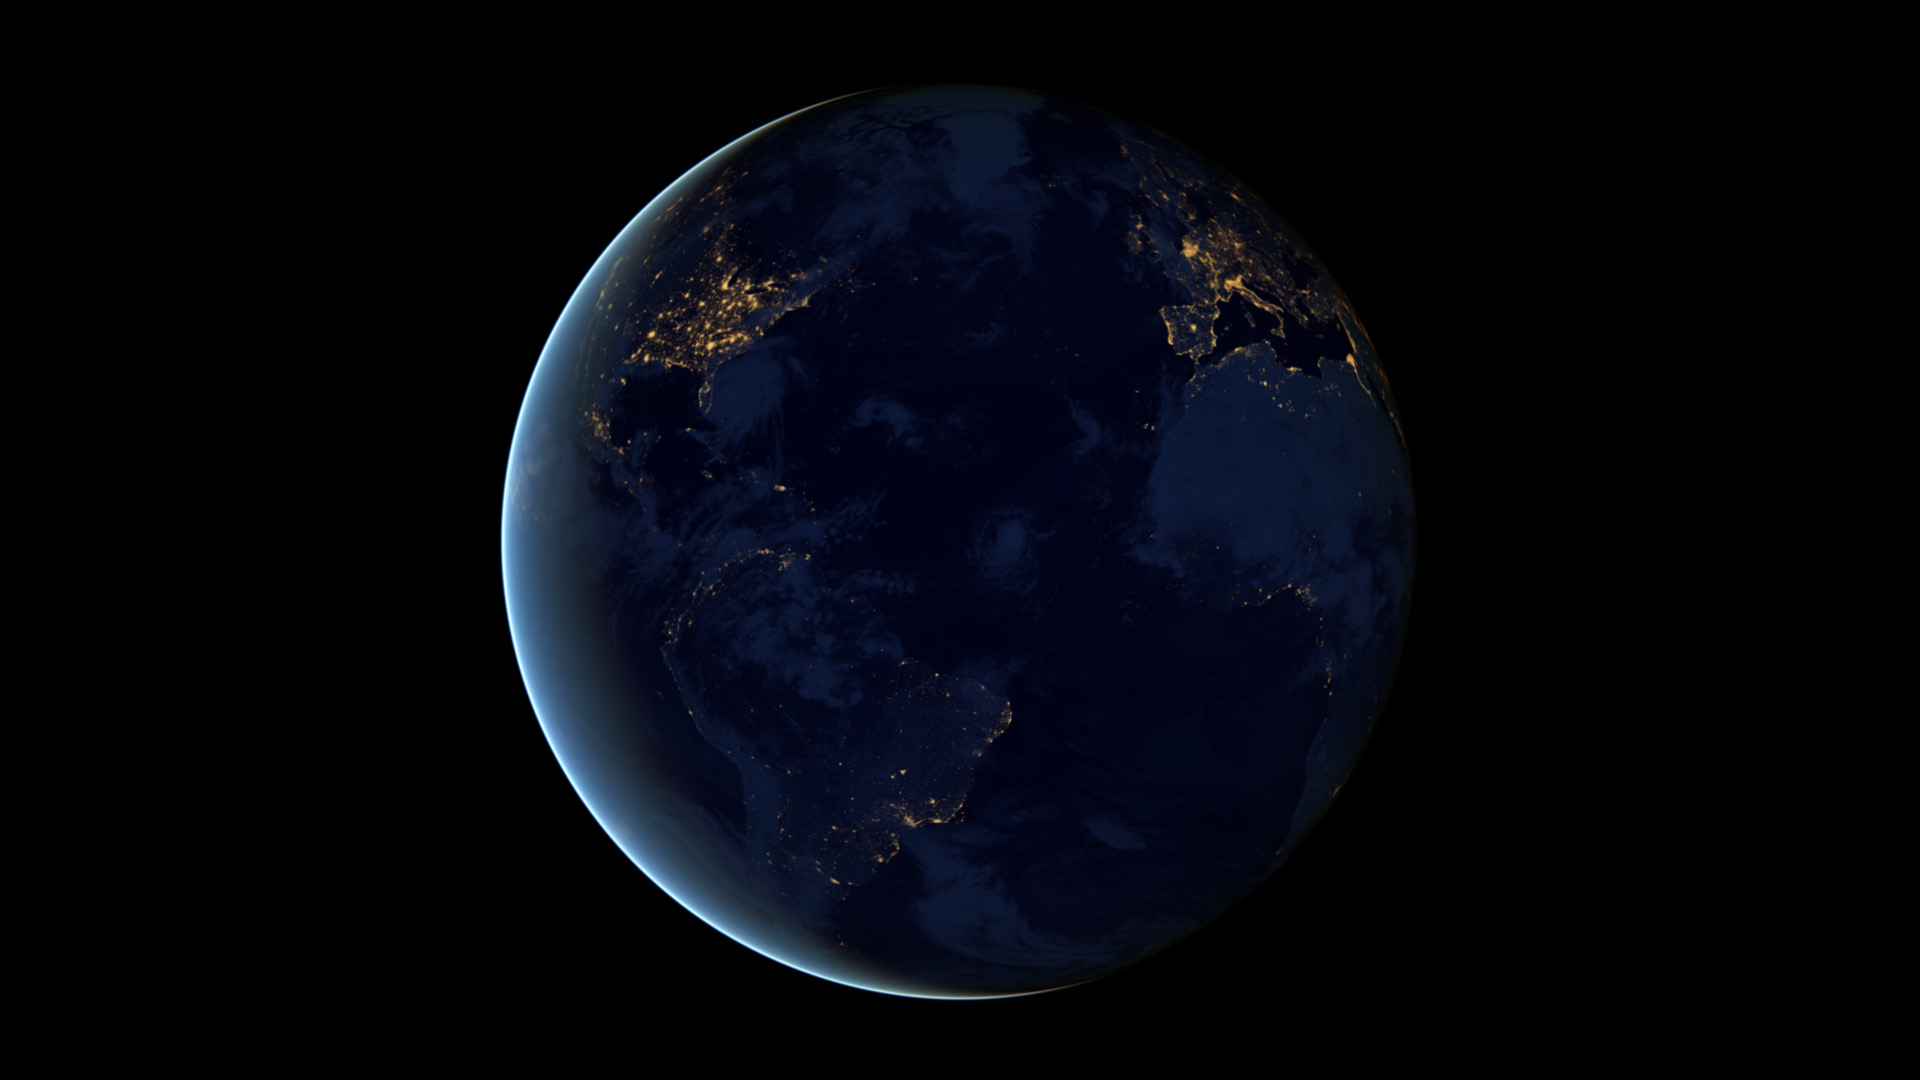 https://i2.wp.com/eoimages.gsfc.nasa.gov/images/imagerecords/79000/79803/earth_night_rotate_lrg.jpg